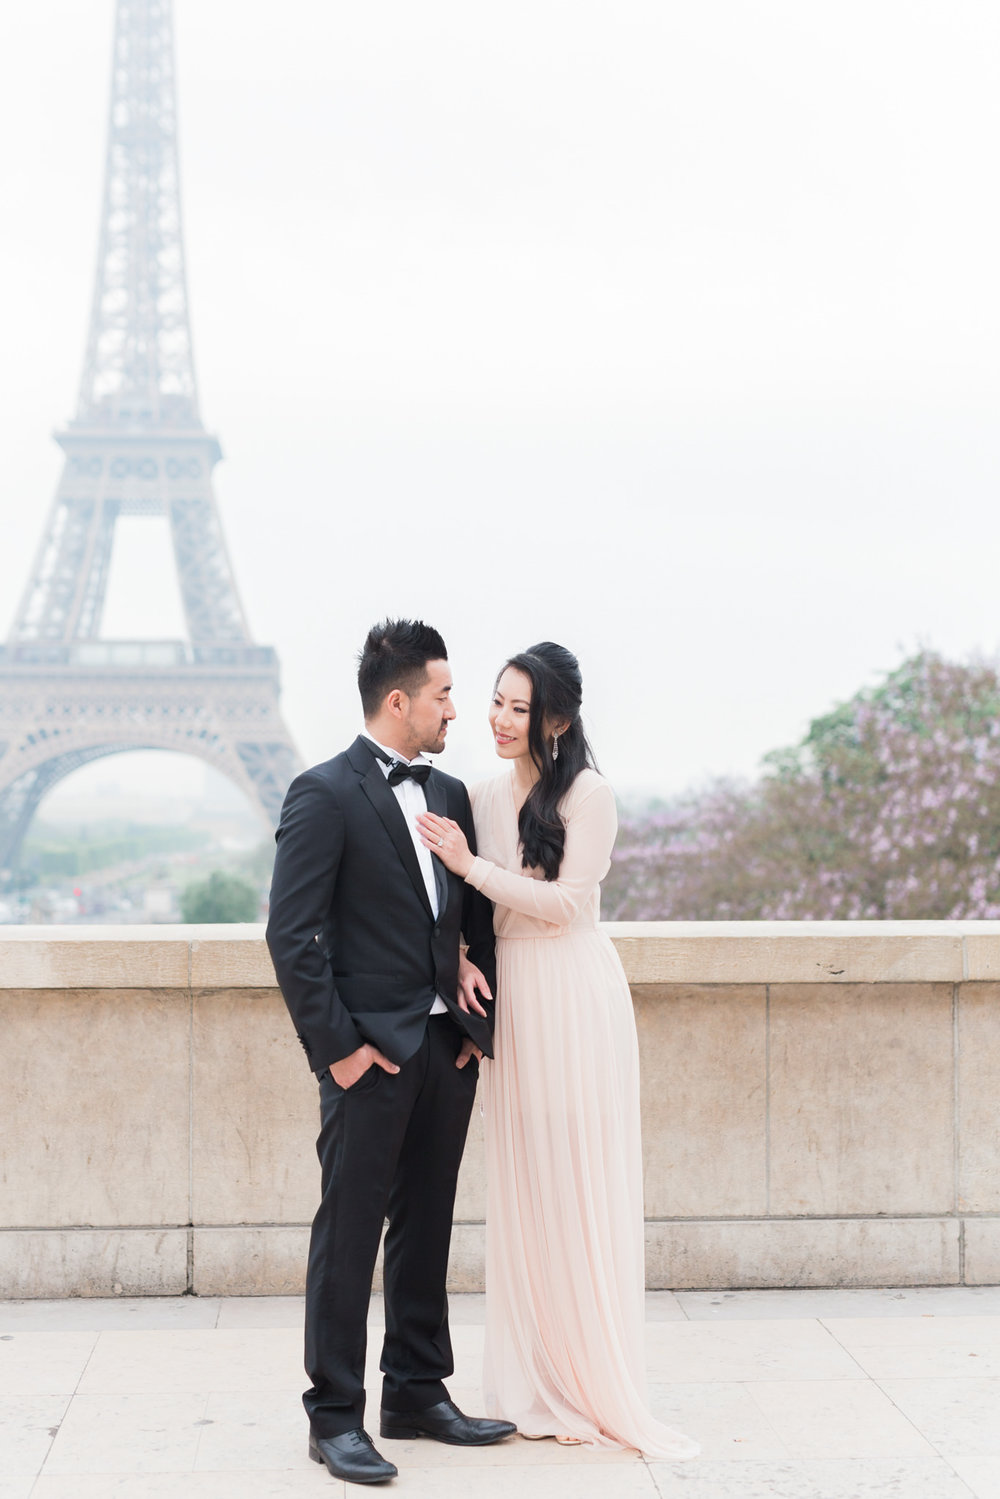 Suzanne_Li_photography_2016_DESTINATIONS_AND_WEDDINGS-297.jpg